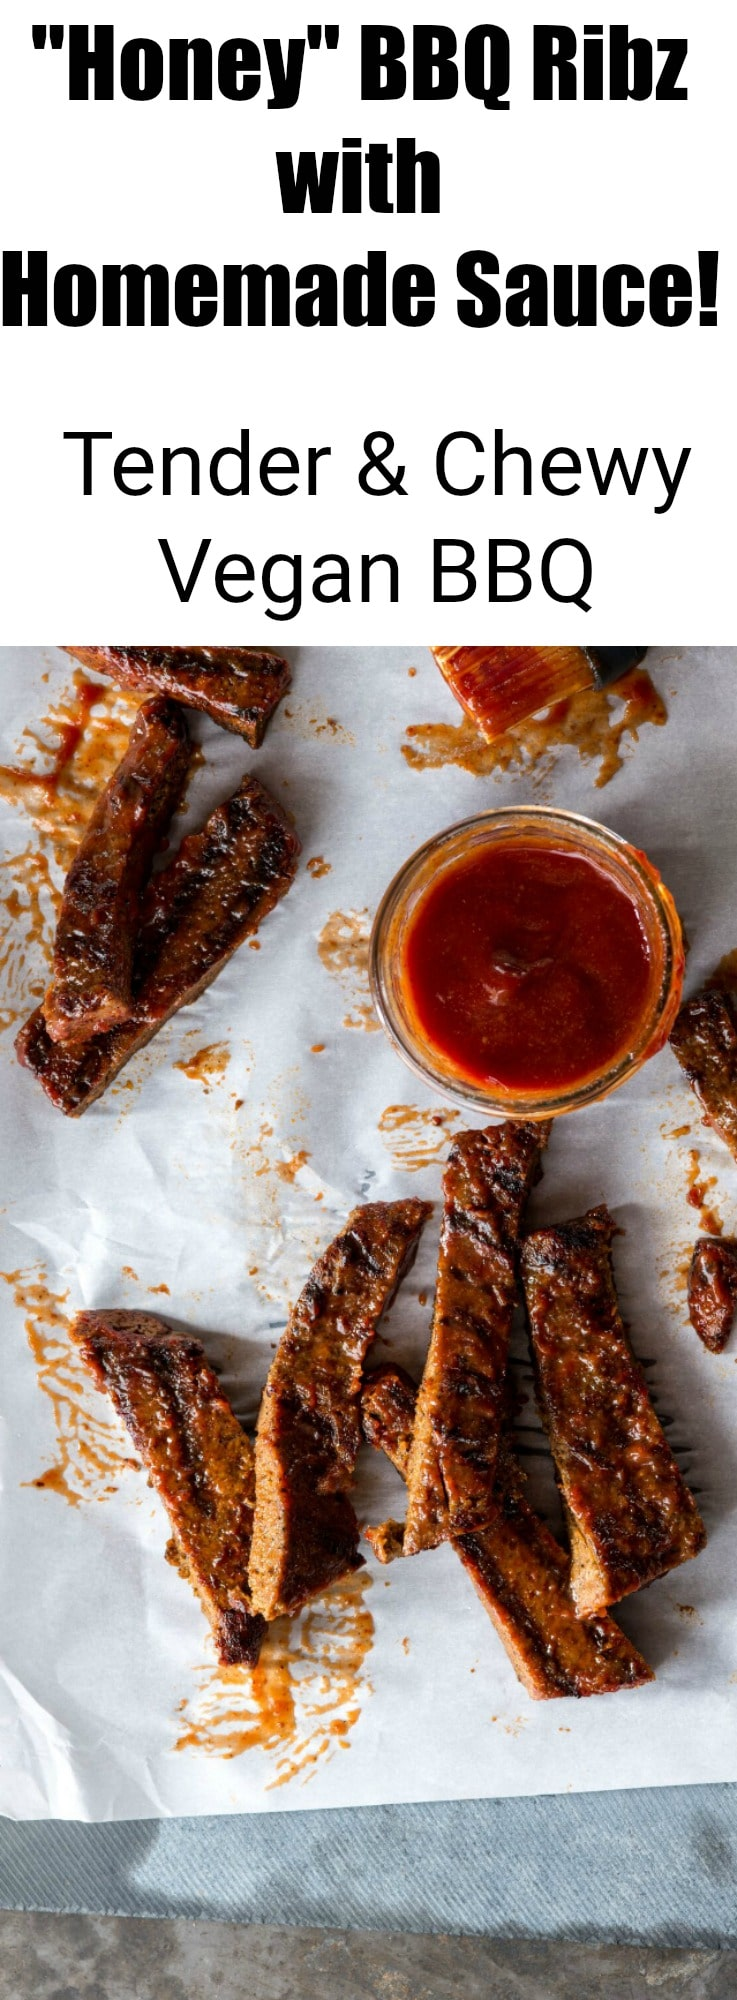 """Honey"" BBQ Ribz from Great Vegan BBQ Without A Grill Cookbook! Tender vegan ribs with a homemade BBQ sauce!"